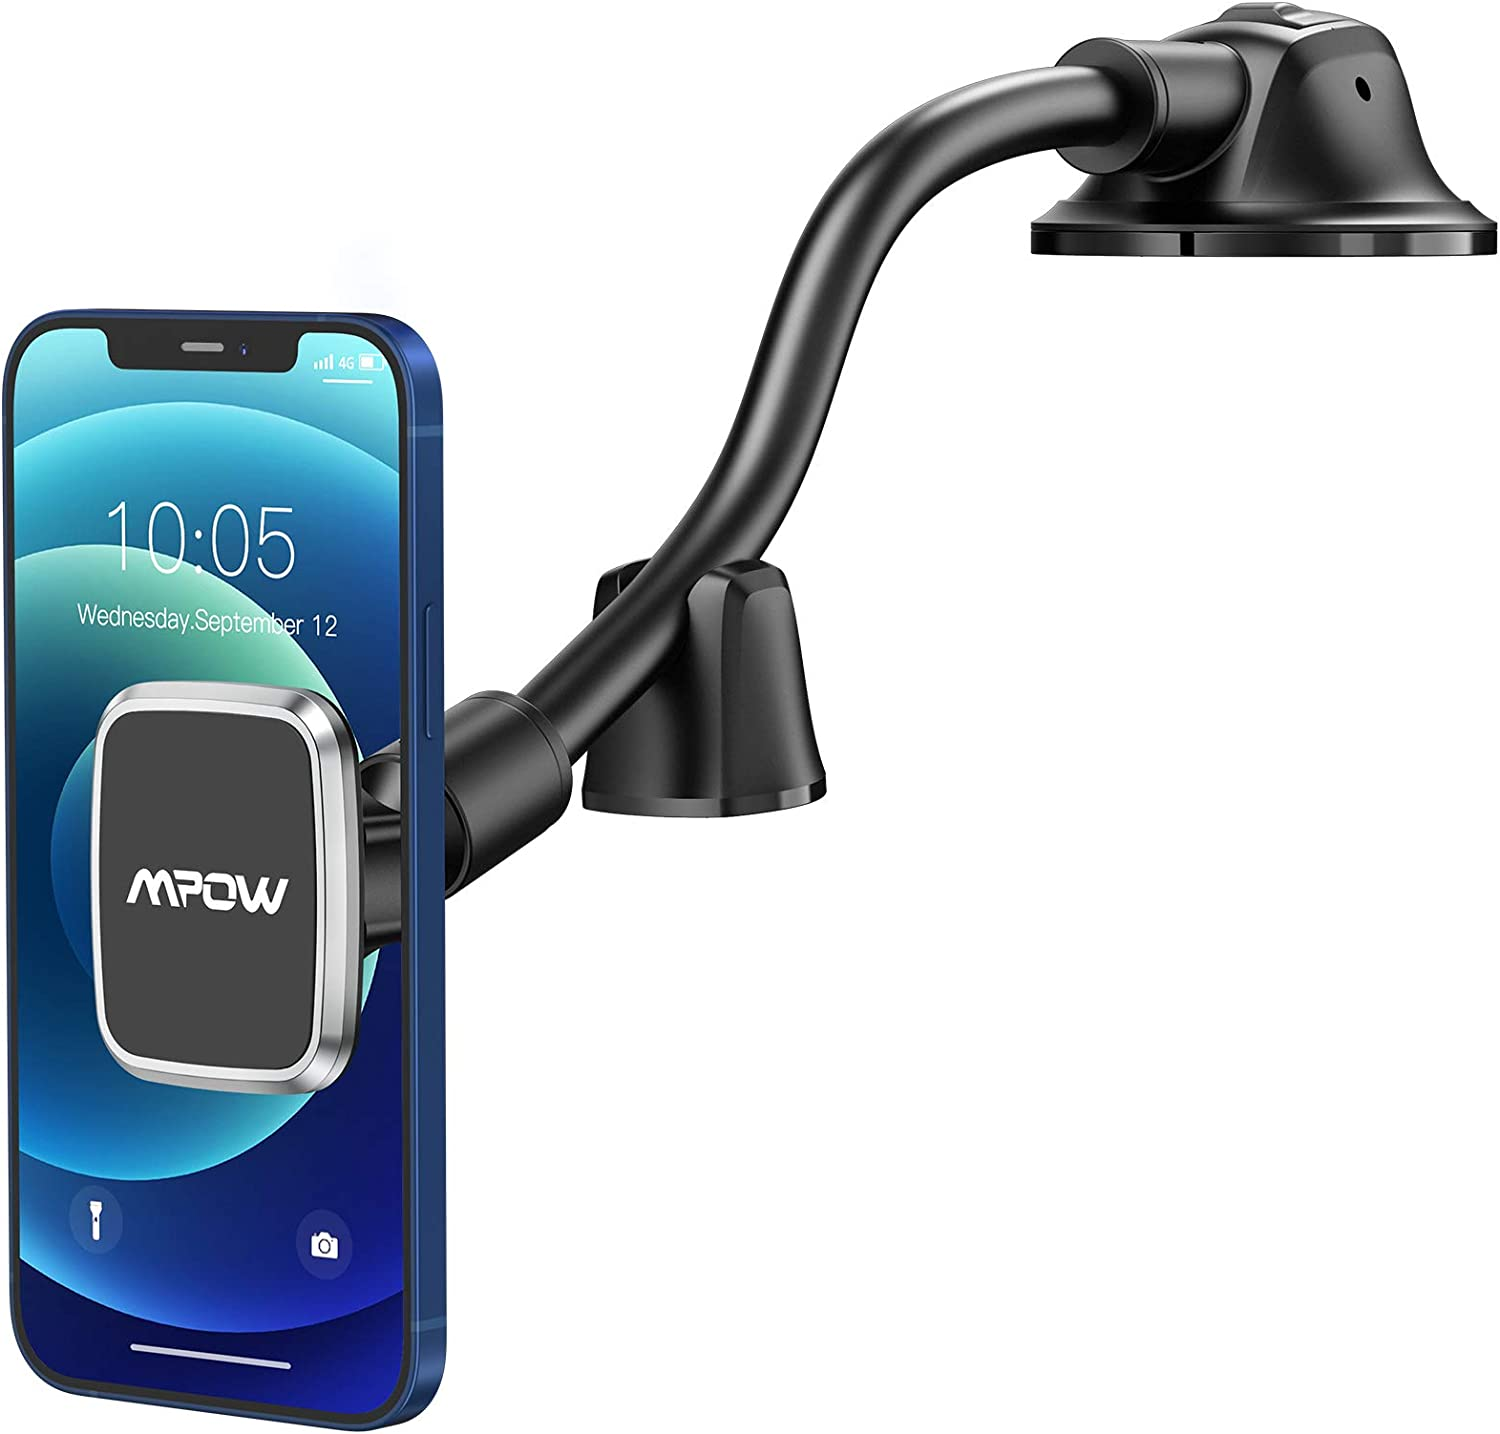 Mpow Car Phone Mount, Dashboard Magnetic Phone Holder with Strong Suction Cup, Long Gooseneck Car Mount Compatible iPhone 12 11 Pro Max/XS Max/XR/XS/X/8/7/6 Plus Etc